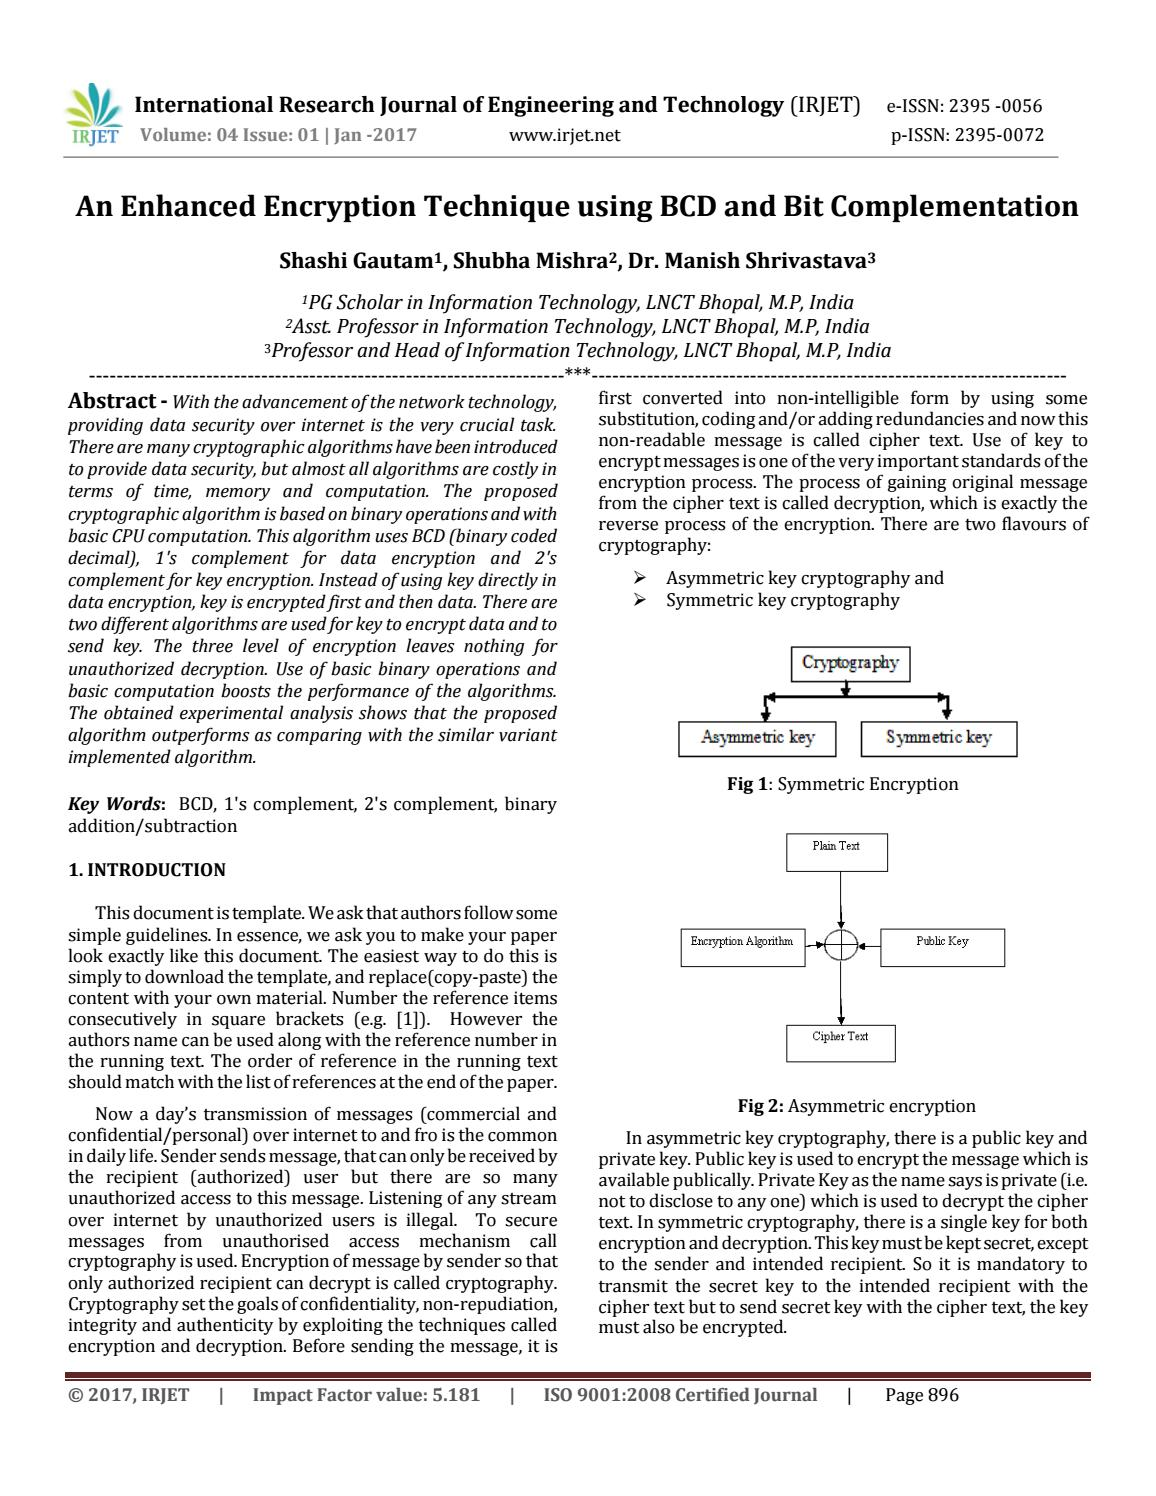 An Enhanced Encryption Technique Using Bcd And Bit Complementation Binary To Converter Pictures By Irjet Journal Issuu